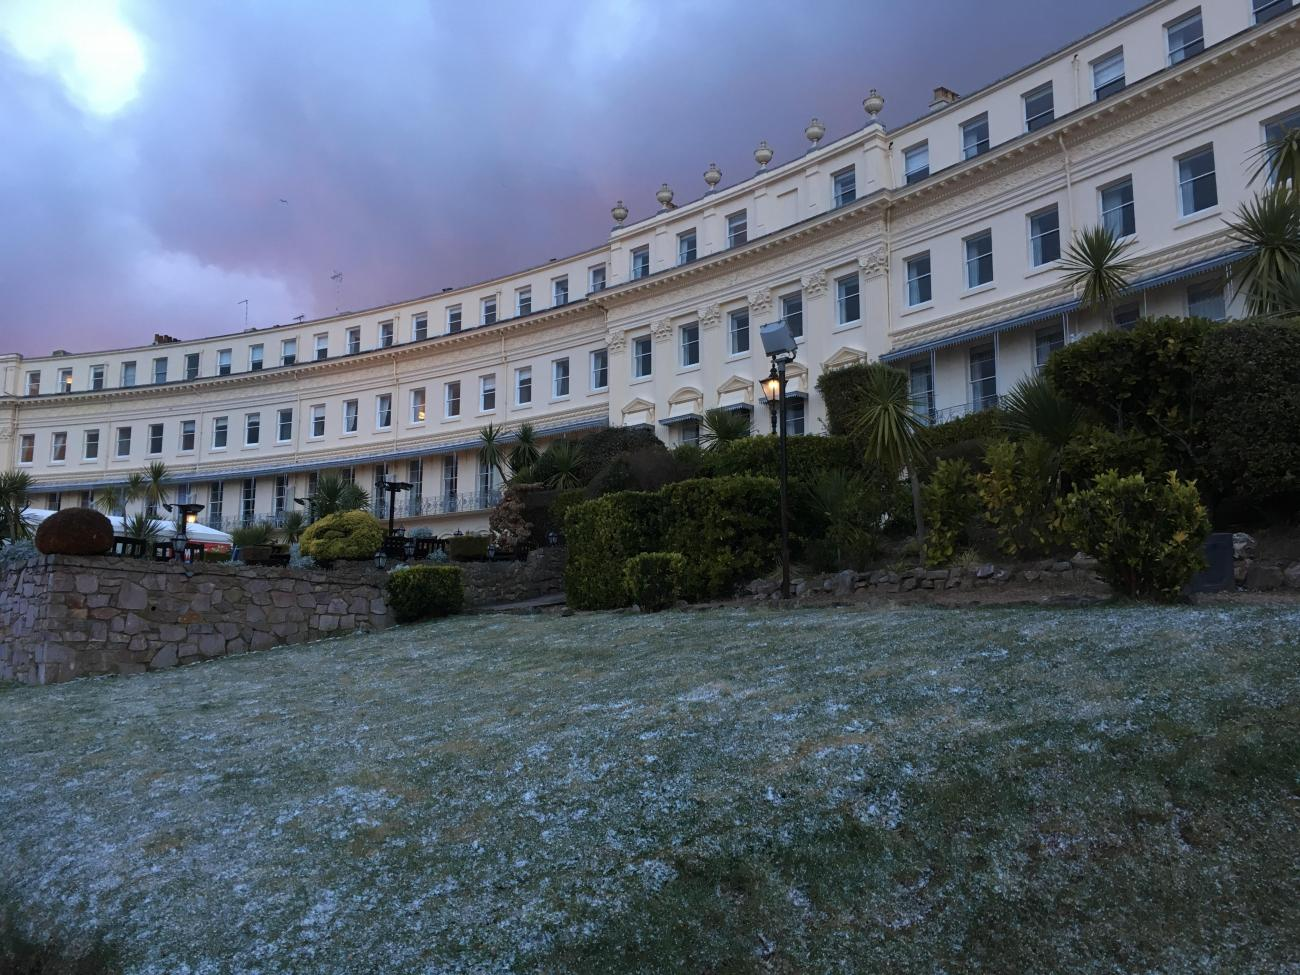 Snow at the osborne hotel torquay